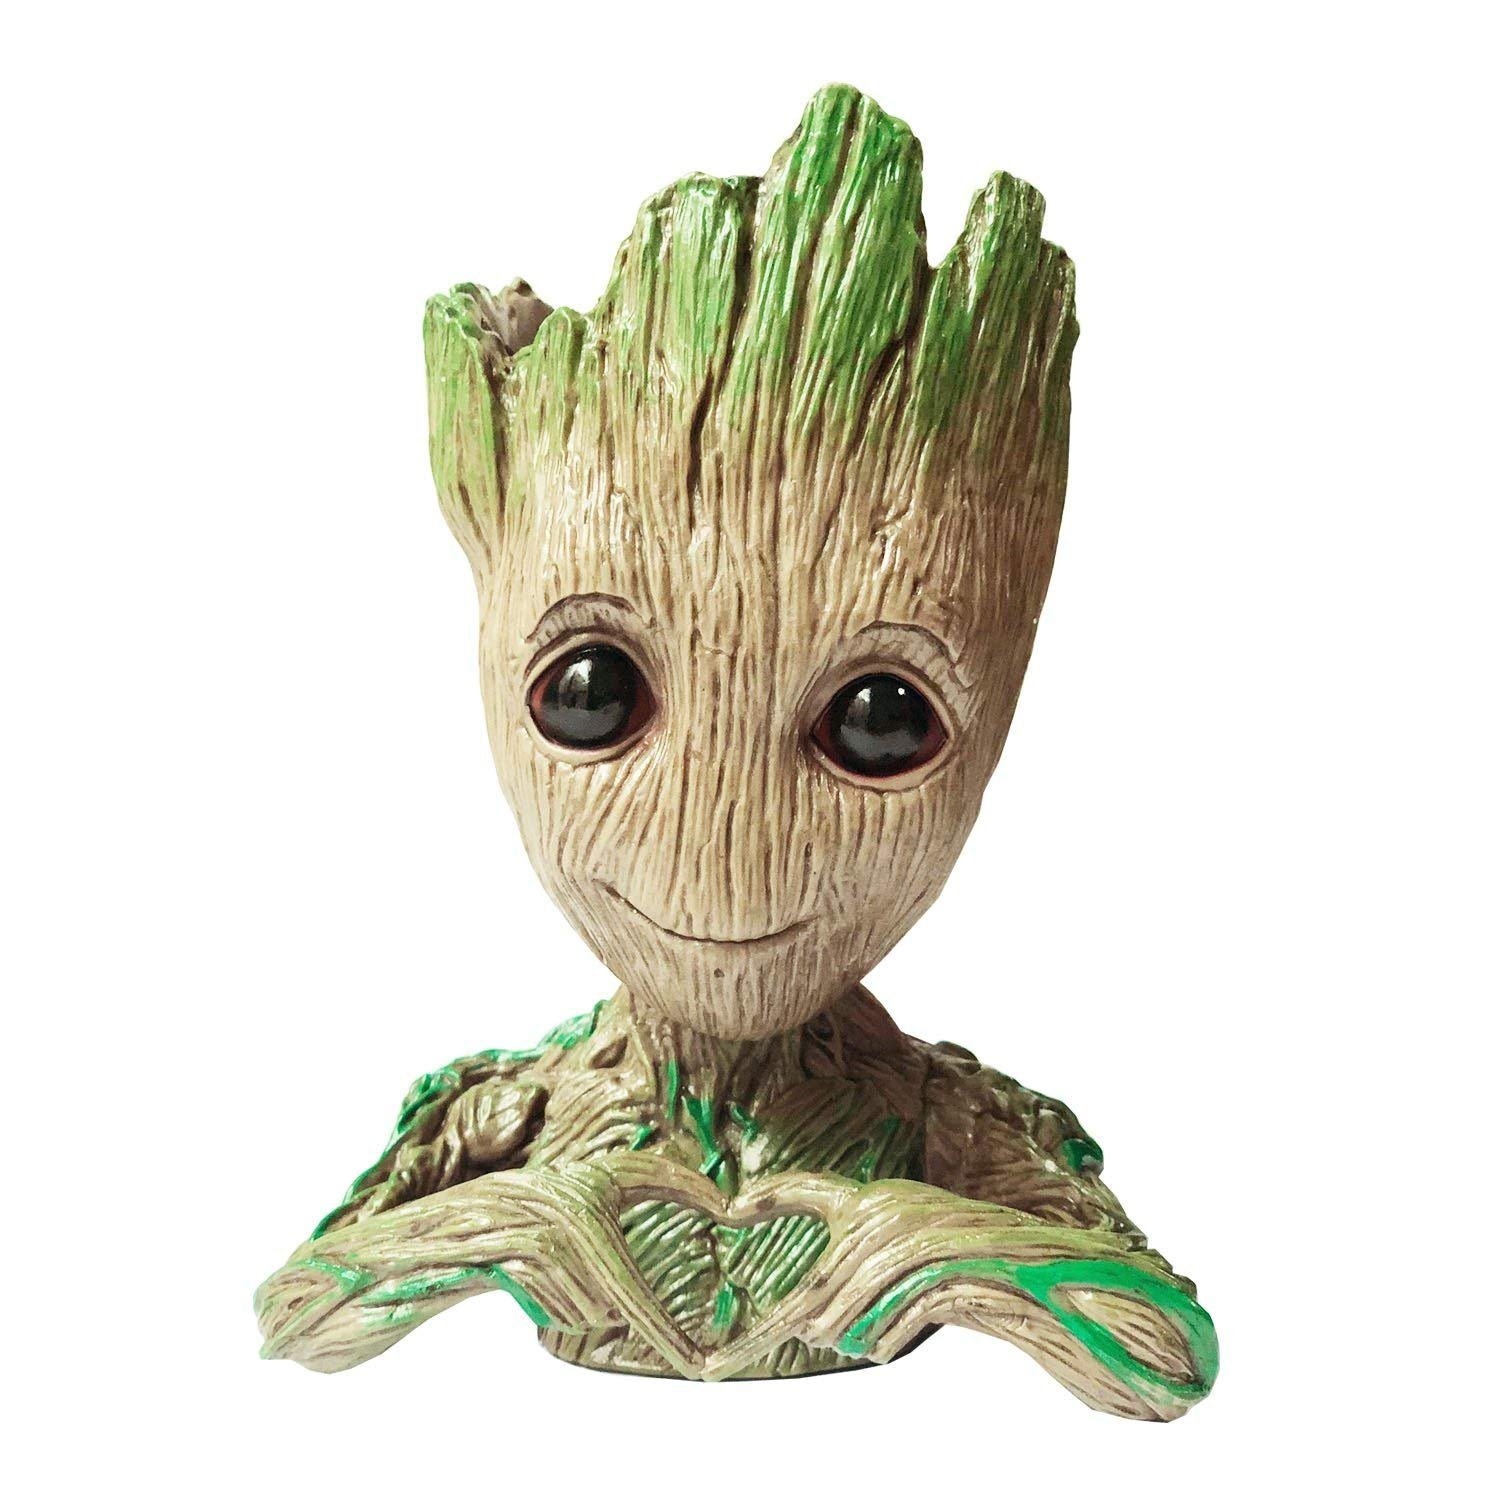 Baifeng Flowerpot Treeman Heart-Shaped Groot Succulent Planter Cute Green Plants Flower Pot with Hole Pen Holder